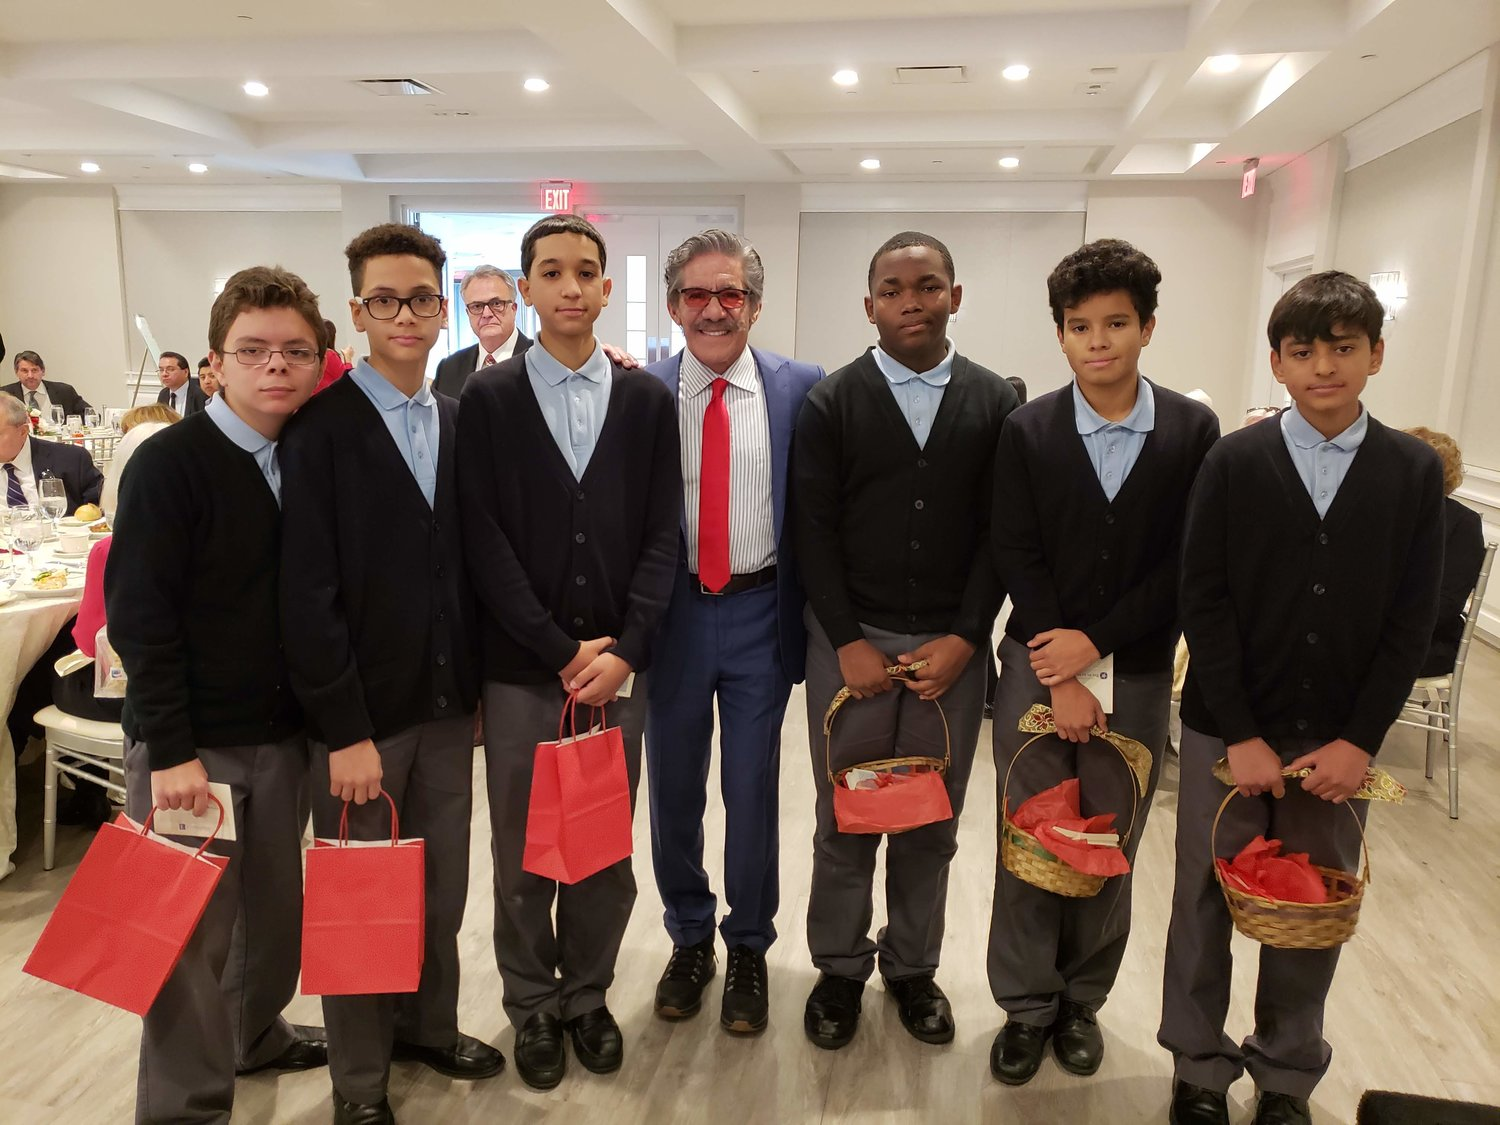 Journalist and talk show host, Geraldo Rivera, center, met with students from the De La Salle School on Dec. 6 at the Engineers Country Club in Roslyn Harbor during the school's annual Christmas Luncheon.